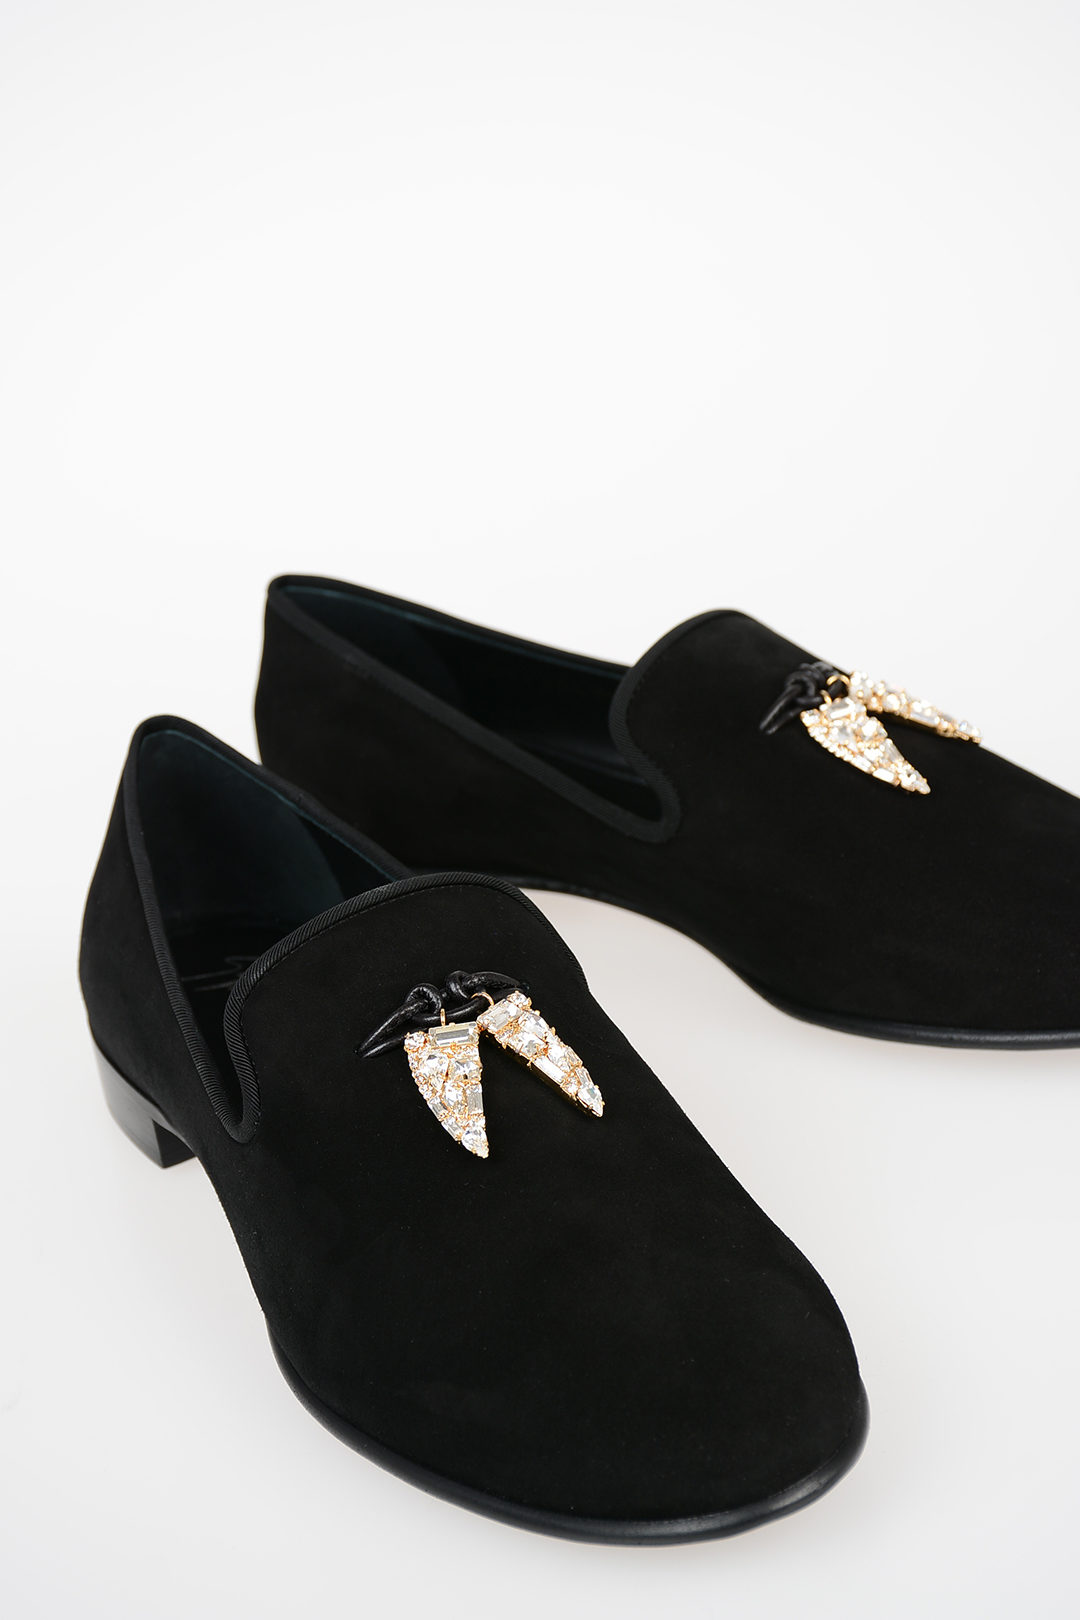 detailed pictures sale online 100% top quality Giuseppe Zanotti Jewel KEVIN Loafer men - Glamood Outlet